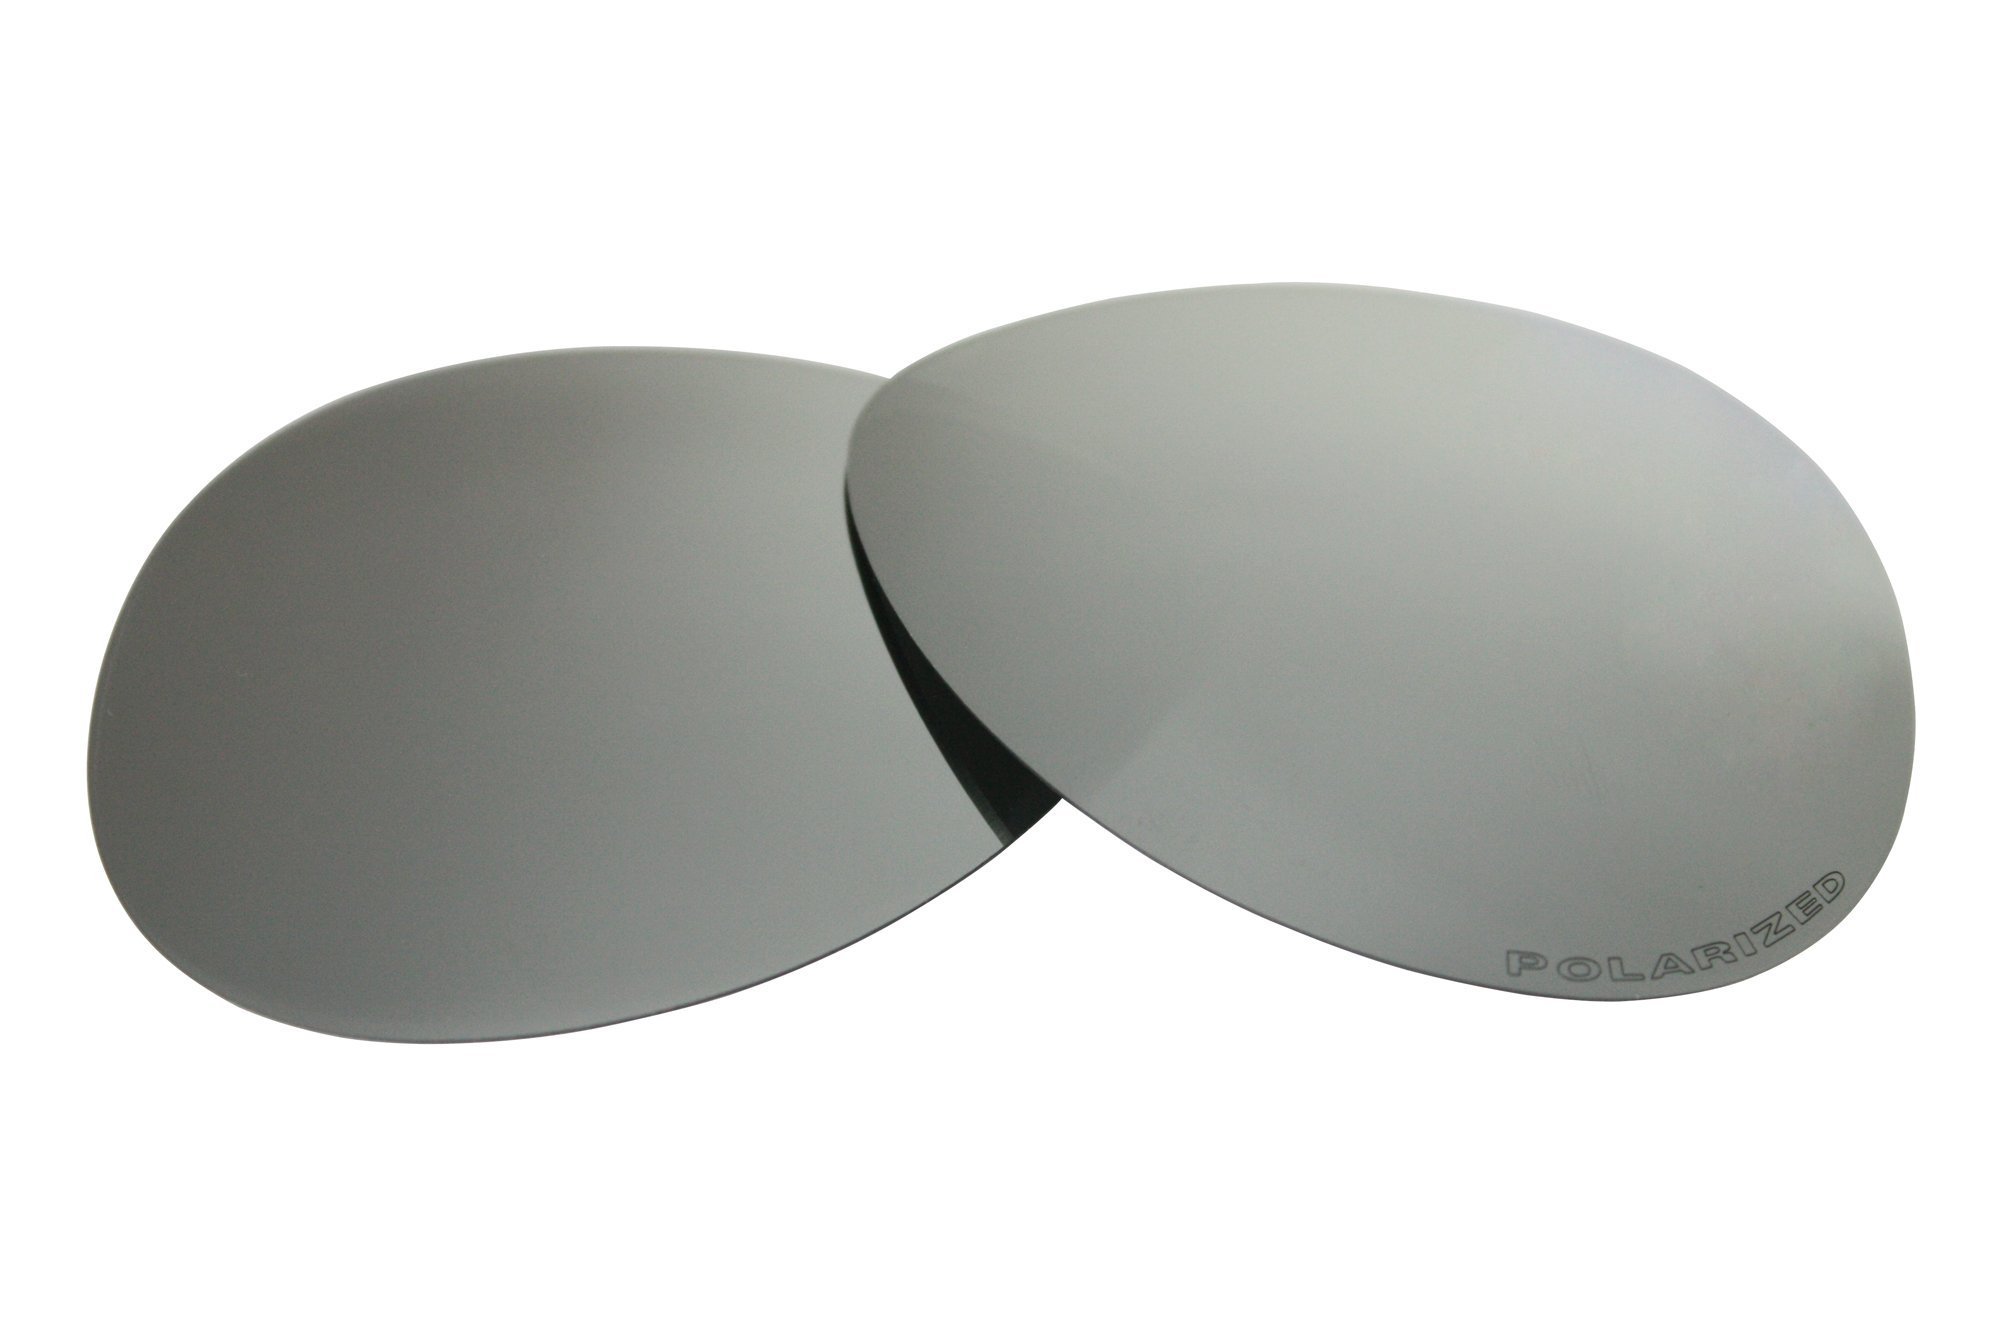 Polarized Replacement Sunglasses Lenses for Oakley Caveat Aviator with Excellent UV Protection for Women(Titanium)